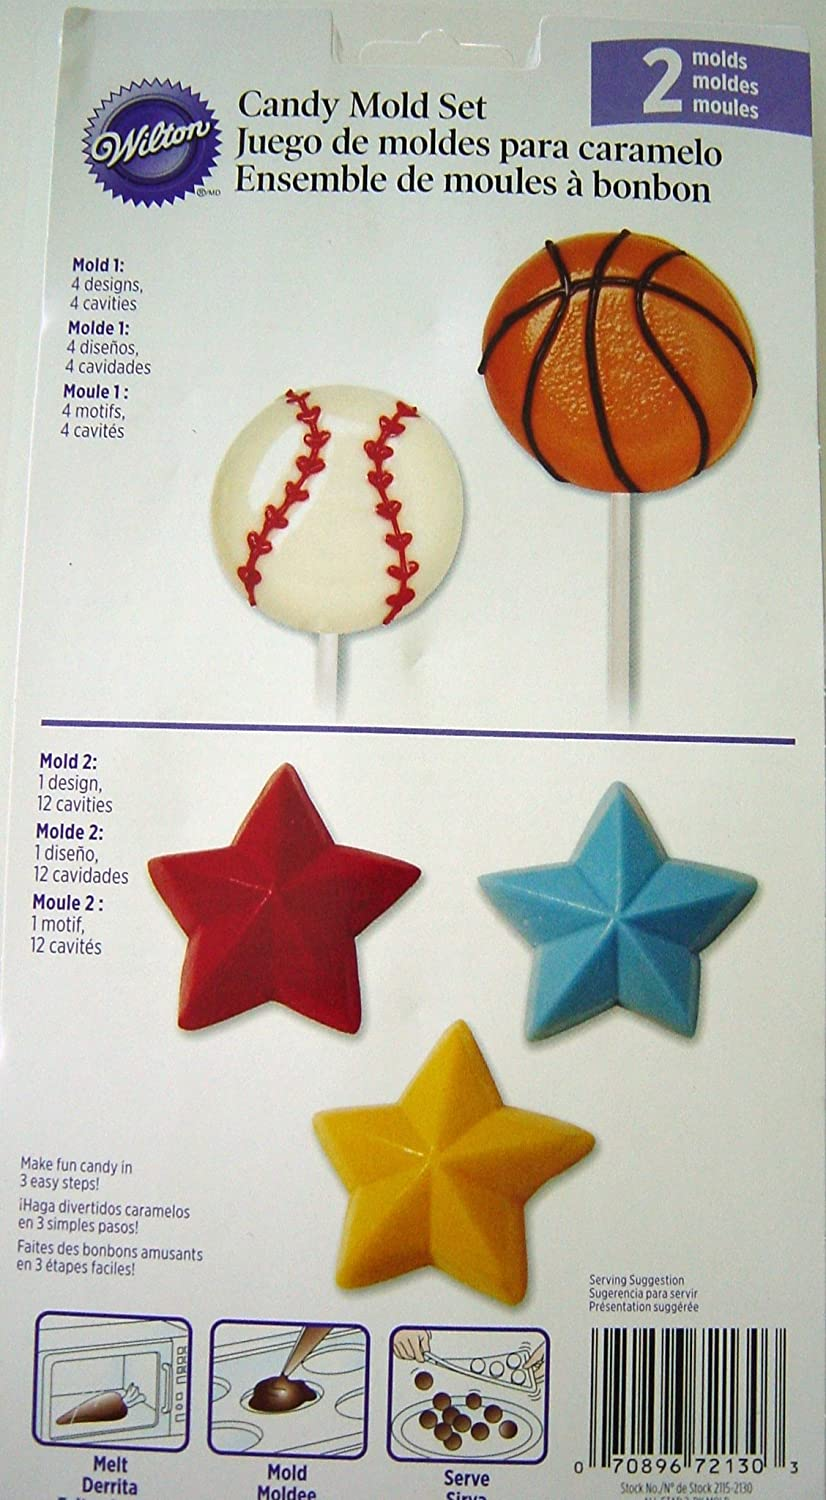 Amazon.com: Wilton Candy 2 Mold Set, Star Sports Candy Lollipop: Candy Making Molds: Kitchen & Dining